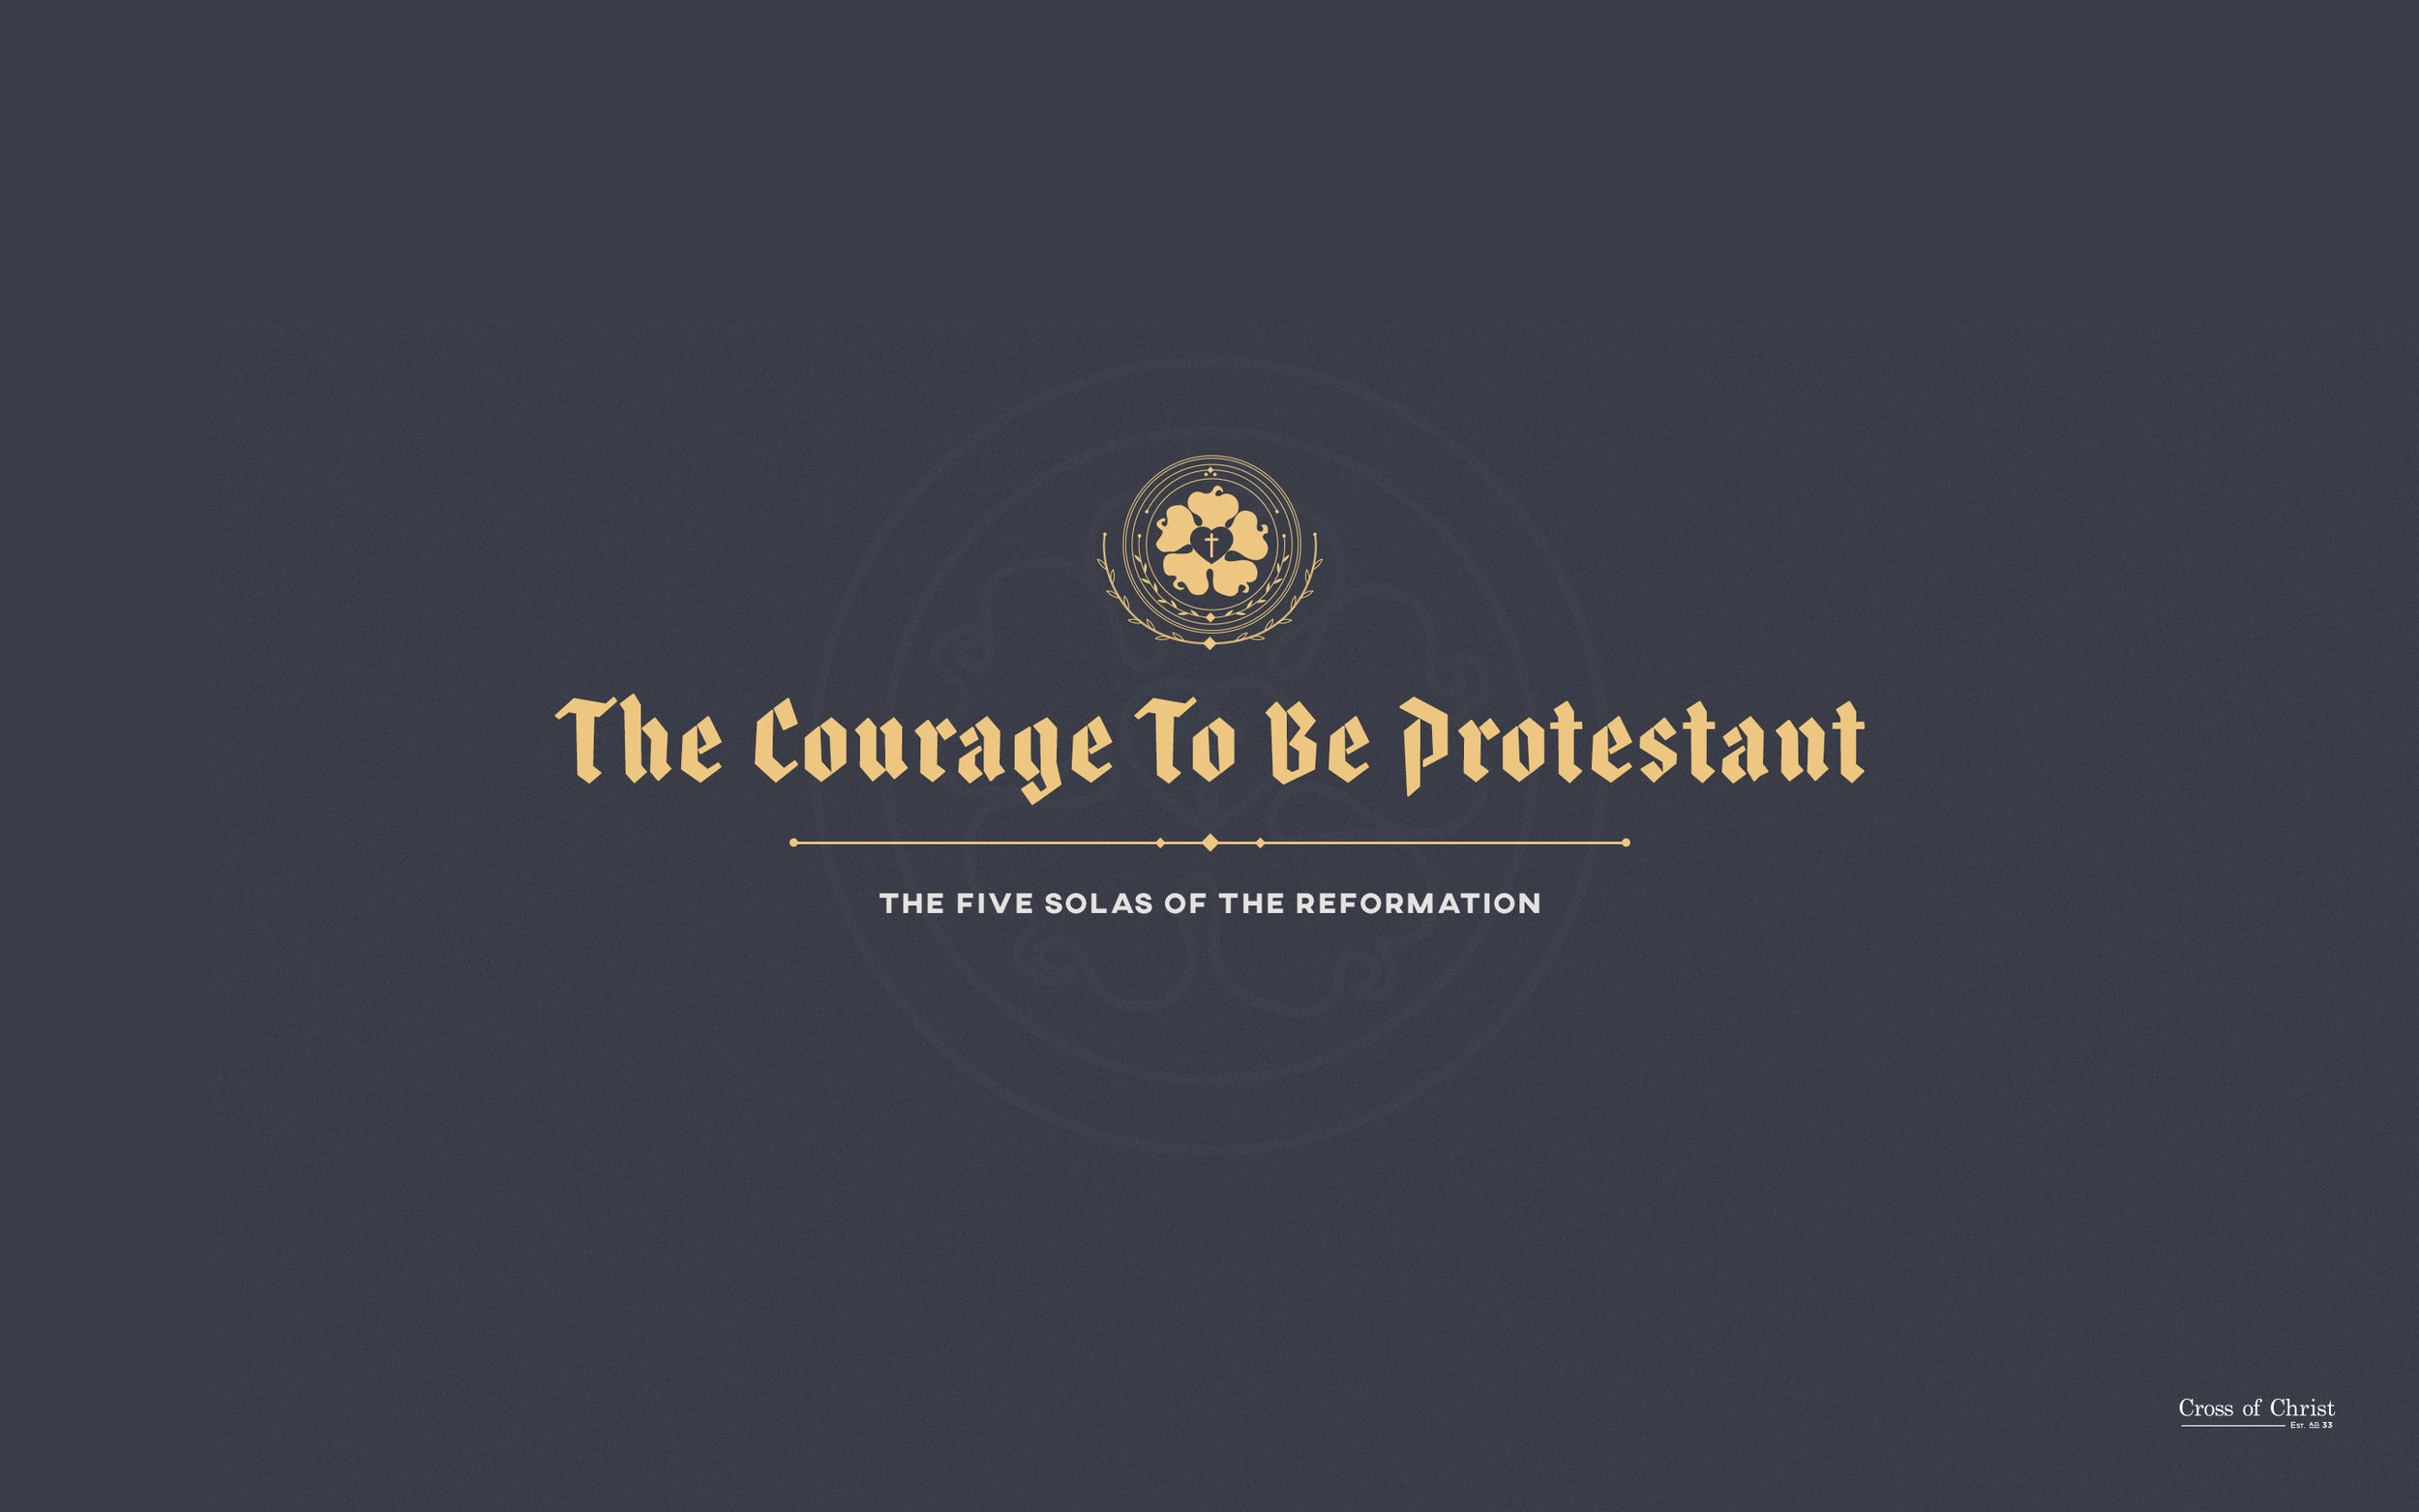 CC-Courage-To-Be-Protestant-Desktop-Wallpaper.jpg